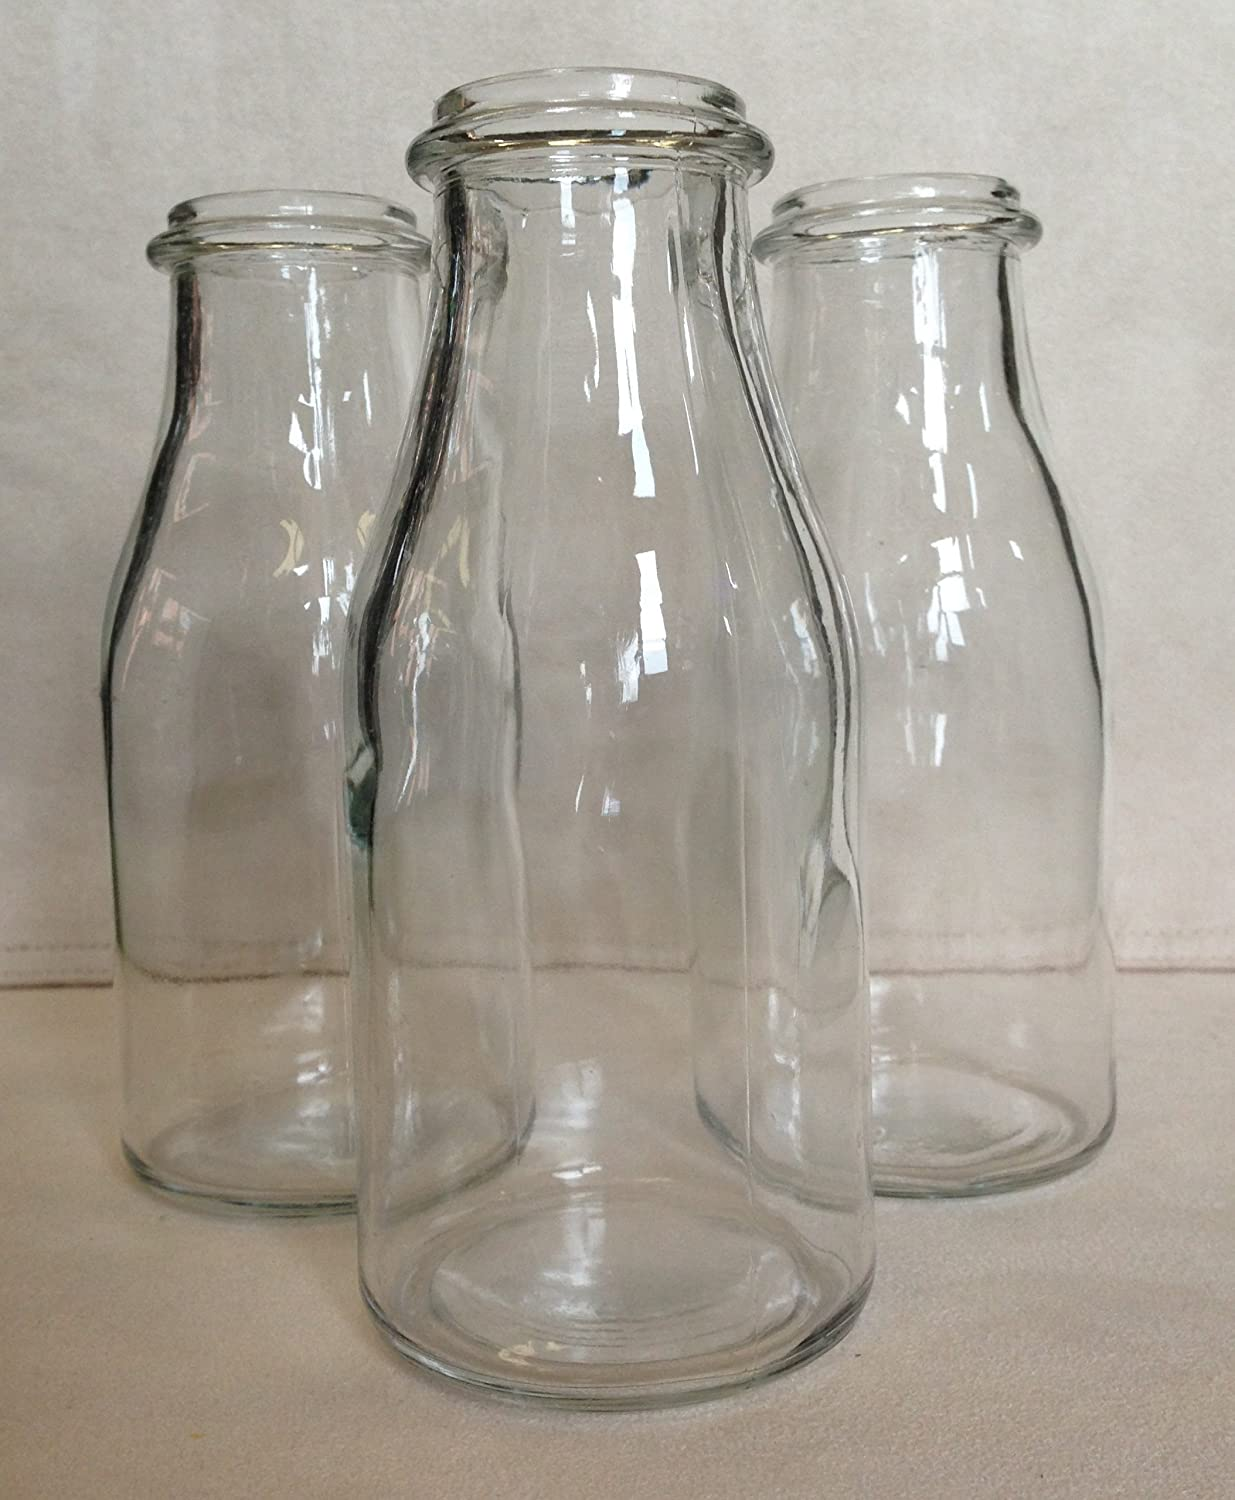 Beautiful milk bottle vase perfect for weddings flowers or arts beautiful milk bottle vase perfect for weddings flowers or arts crafts amazon kitchen home reviewsmspy